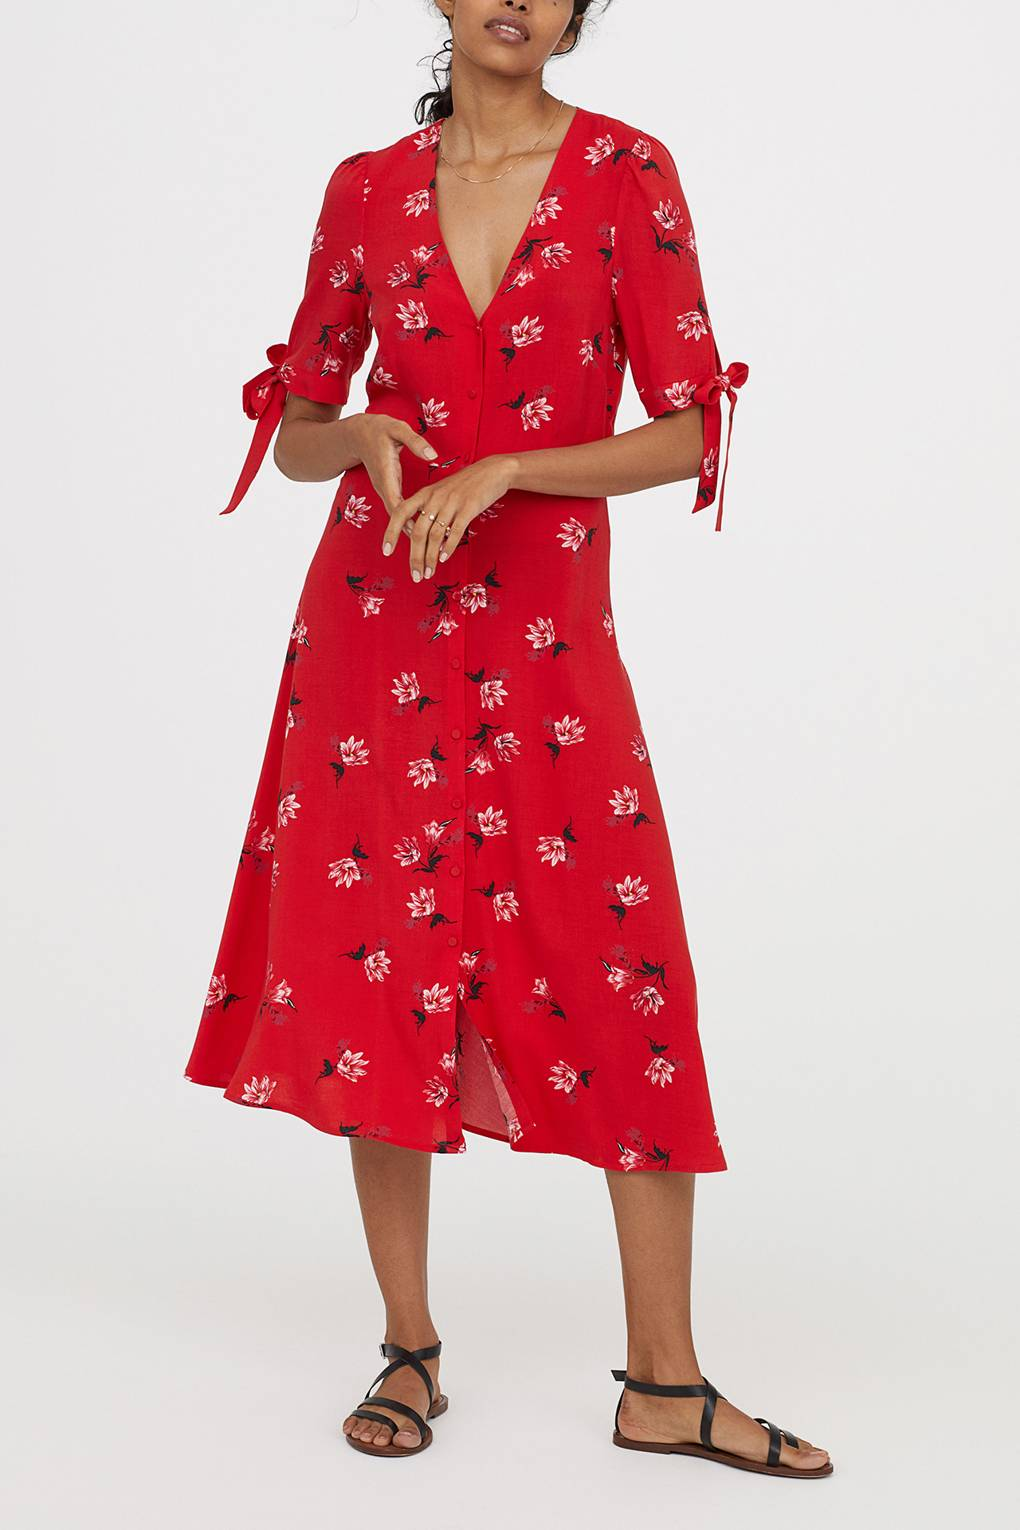 a31b6f1c0478 Zara Floral Midi Dress: Will This Be The Most Popular Dress Of The Summer?  | Glamour UK